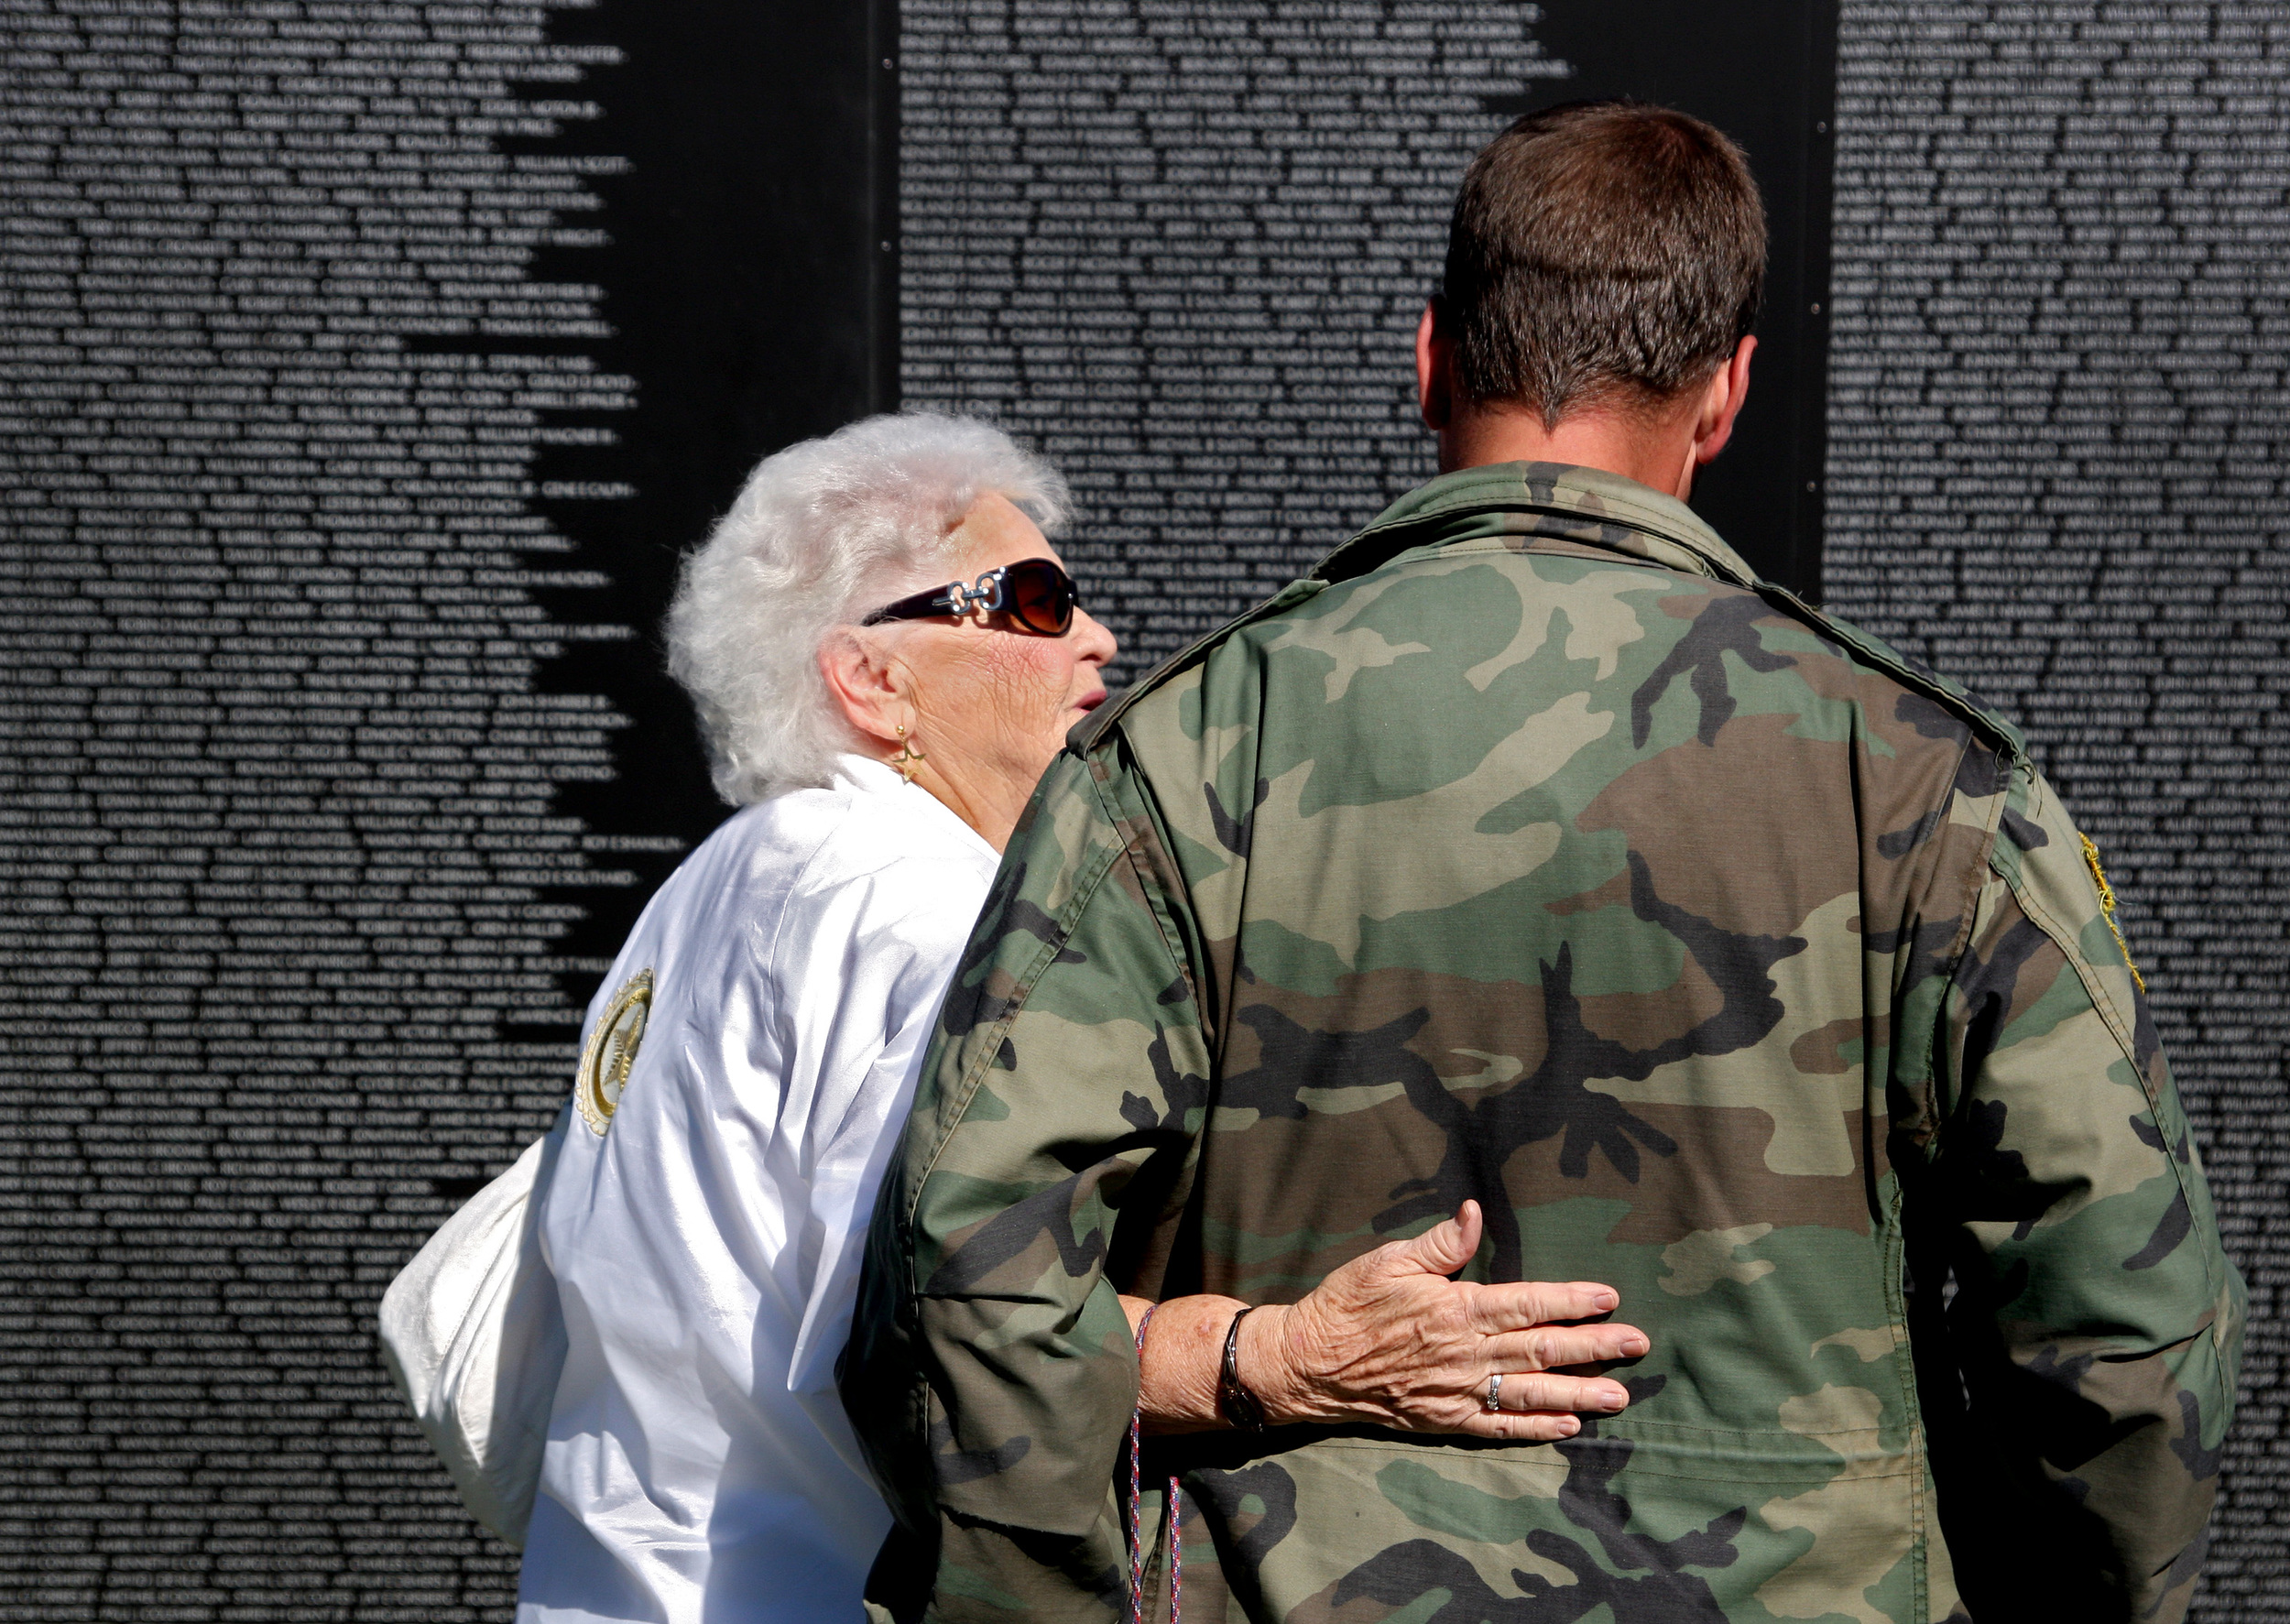 10/16/10 -- Aline Silvia comforts Brian Richardson at the replica Vietnam memorial at the Freedom Tribue in Suffolk.  Silvia's son is listed on the panel in front of them.